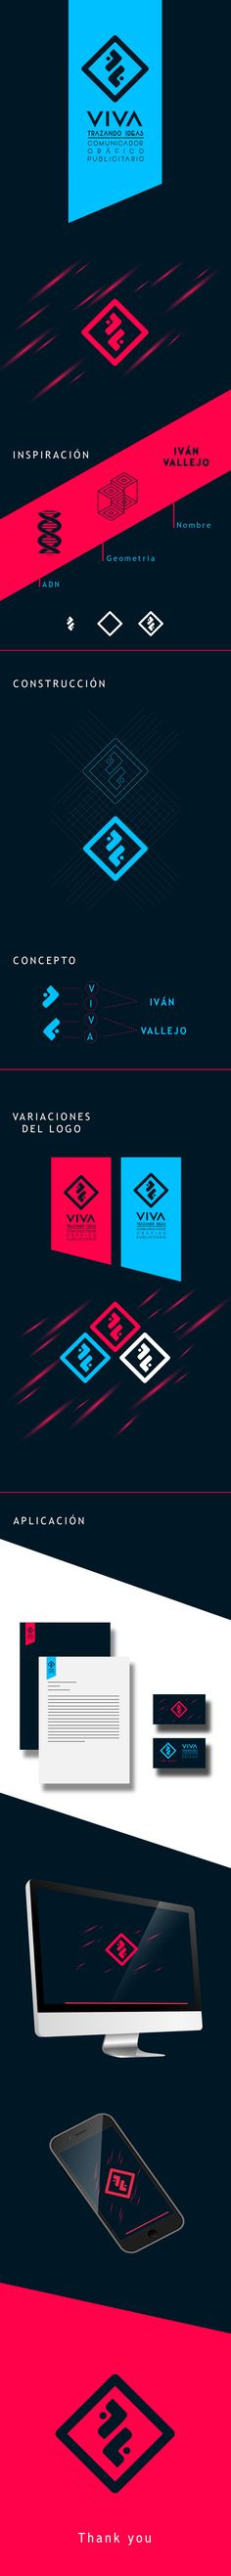 LOGO VIVA on Behance